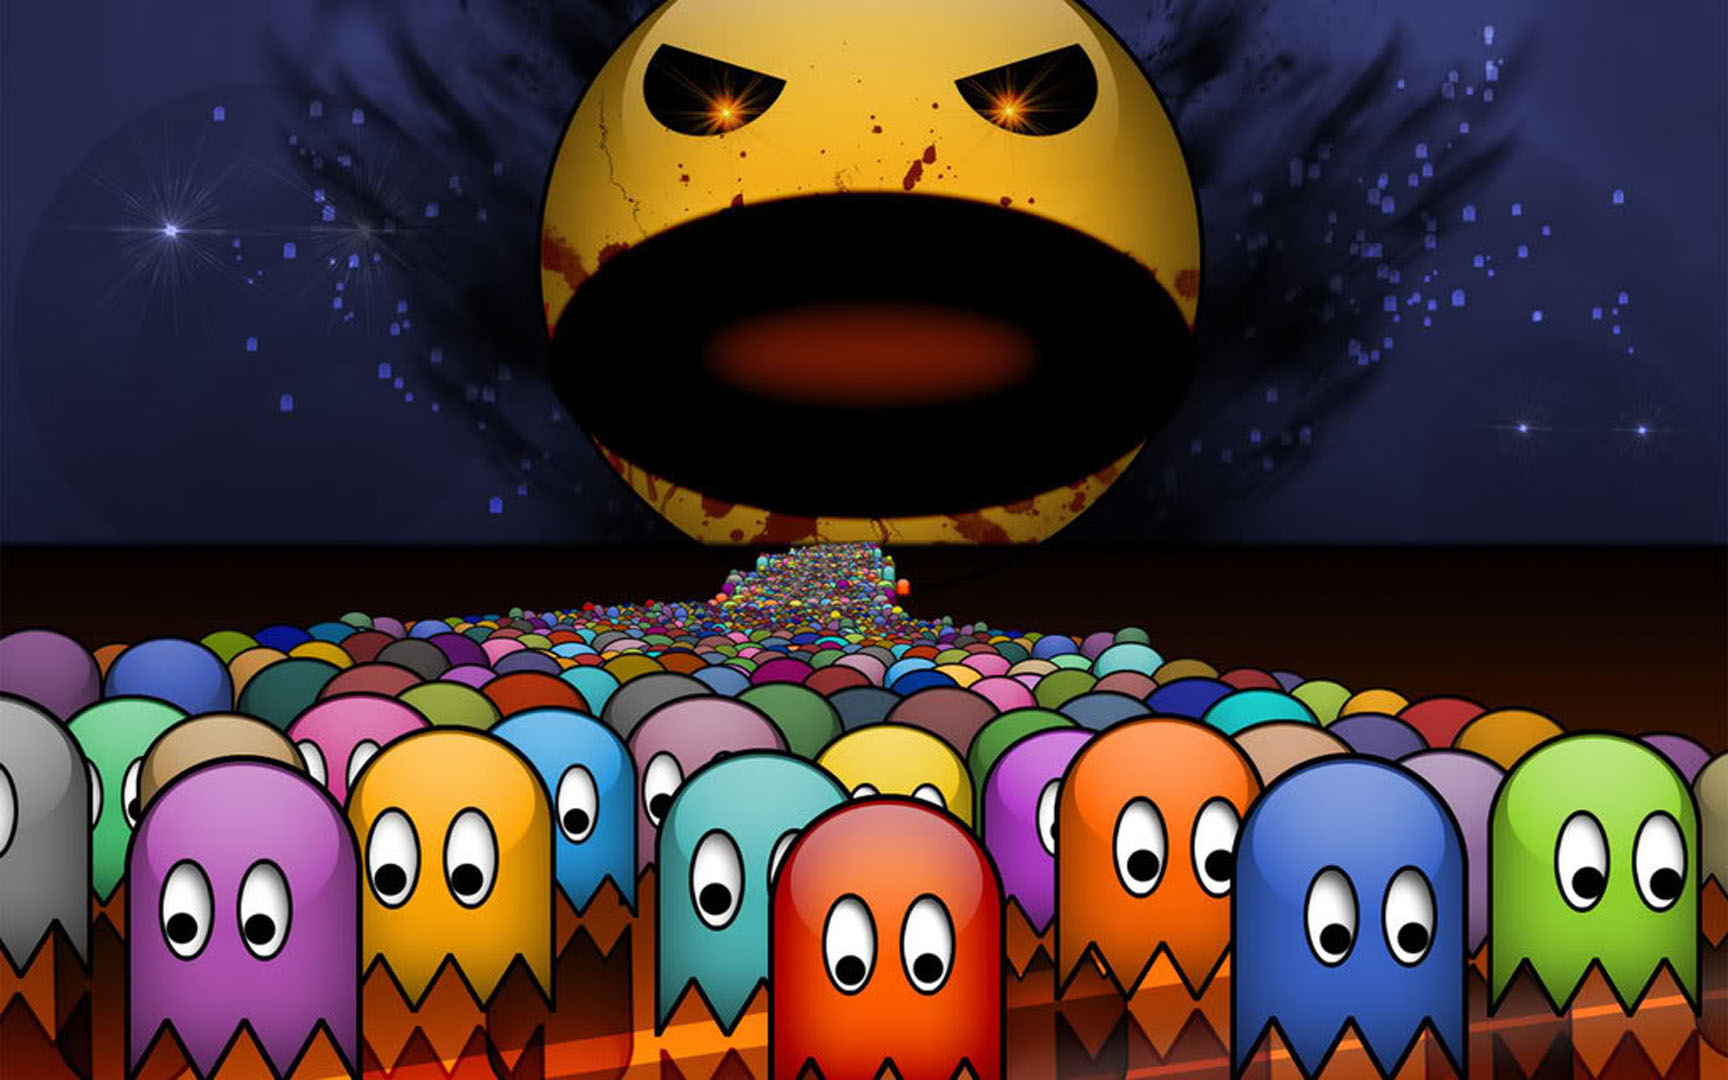 pacman ghosts nightmare Wallpaper Background thumbnail